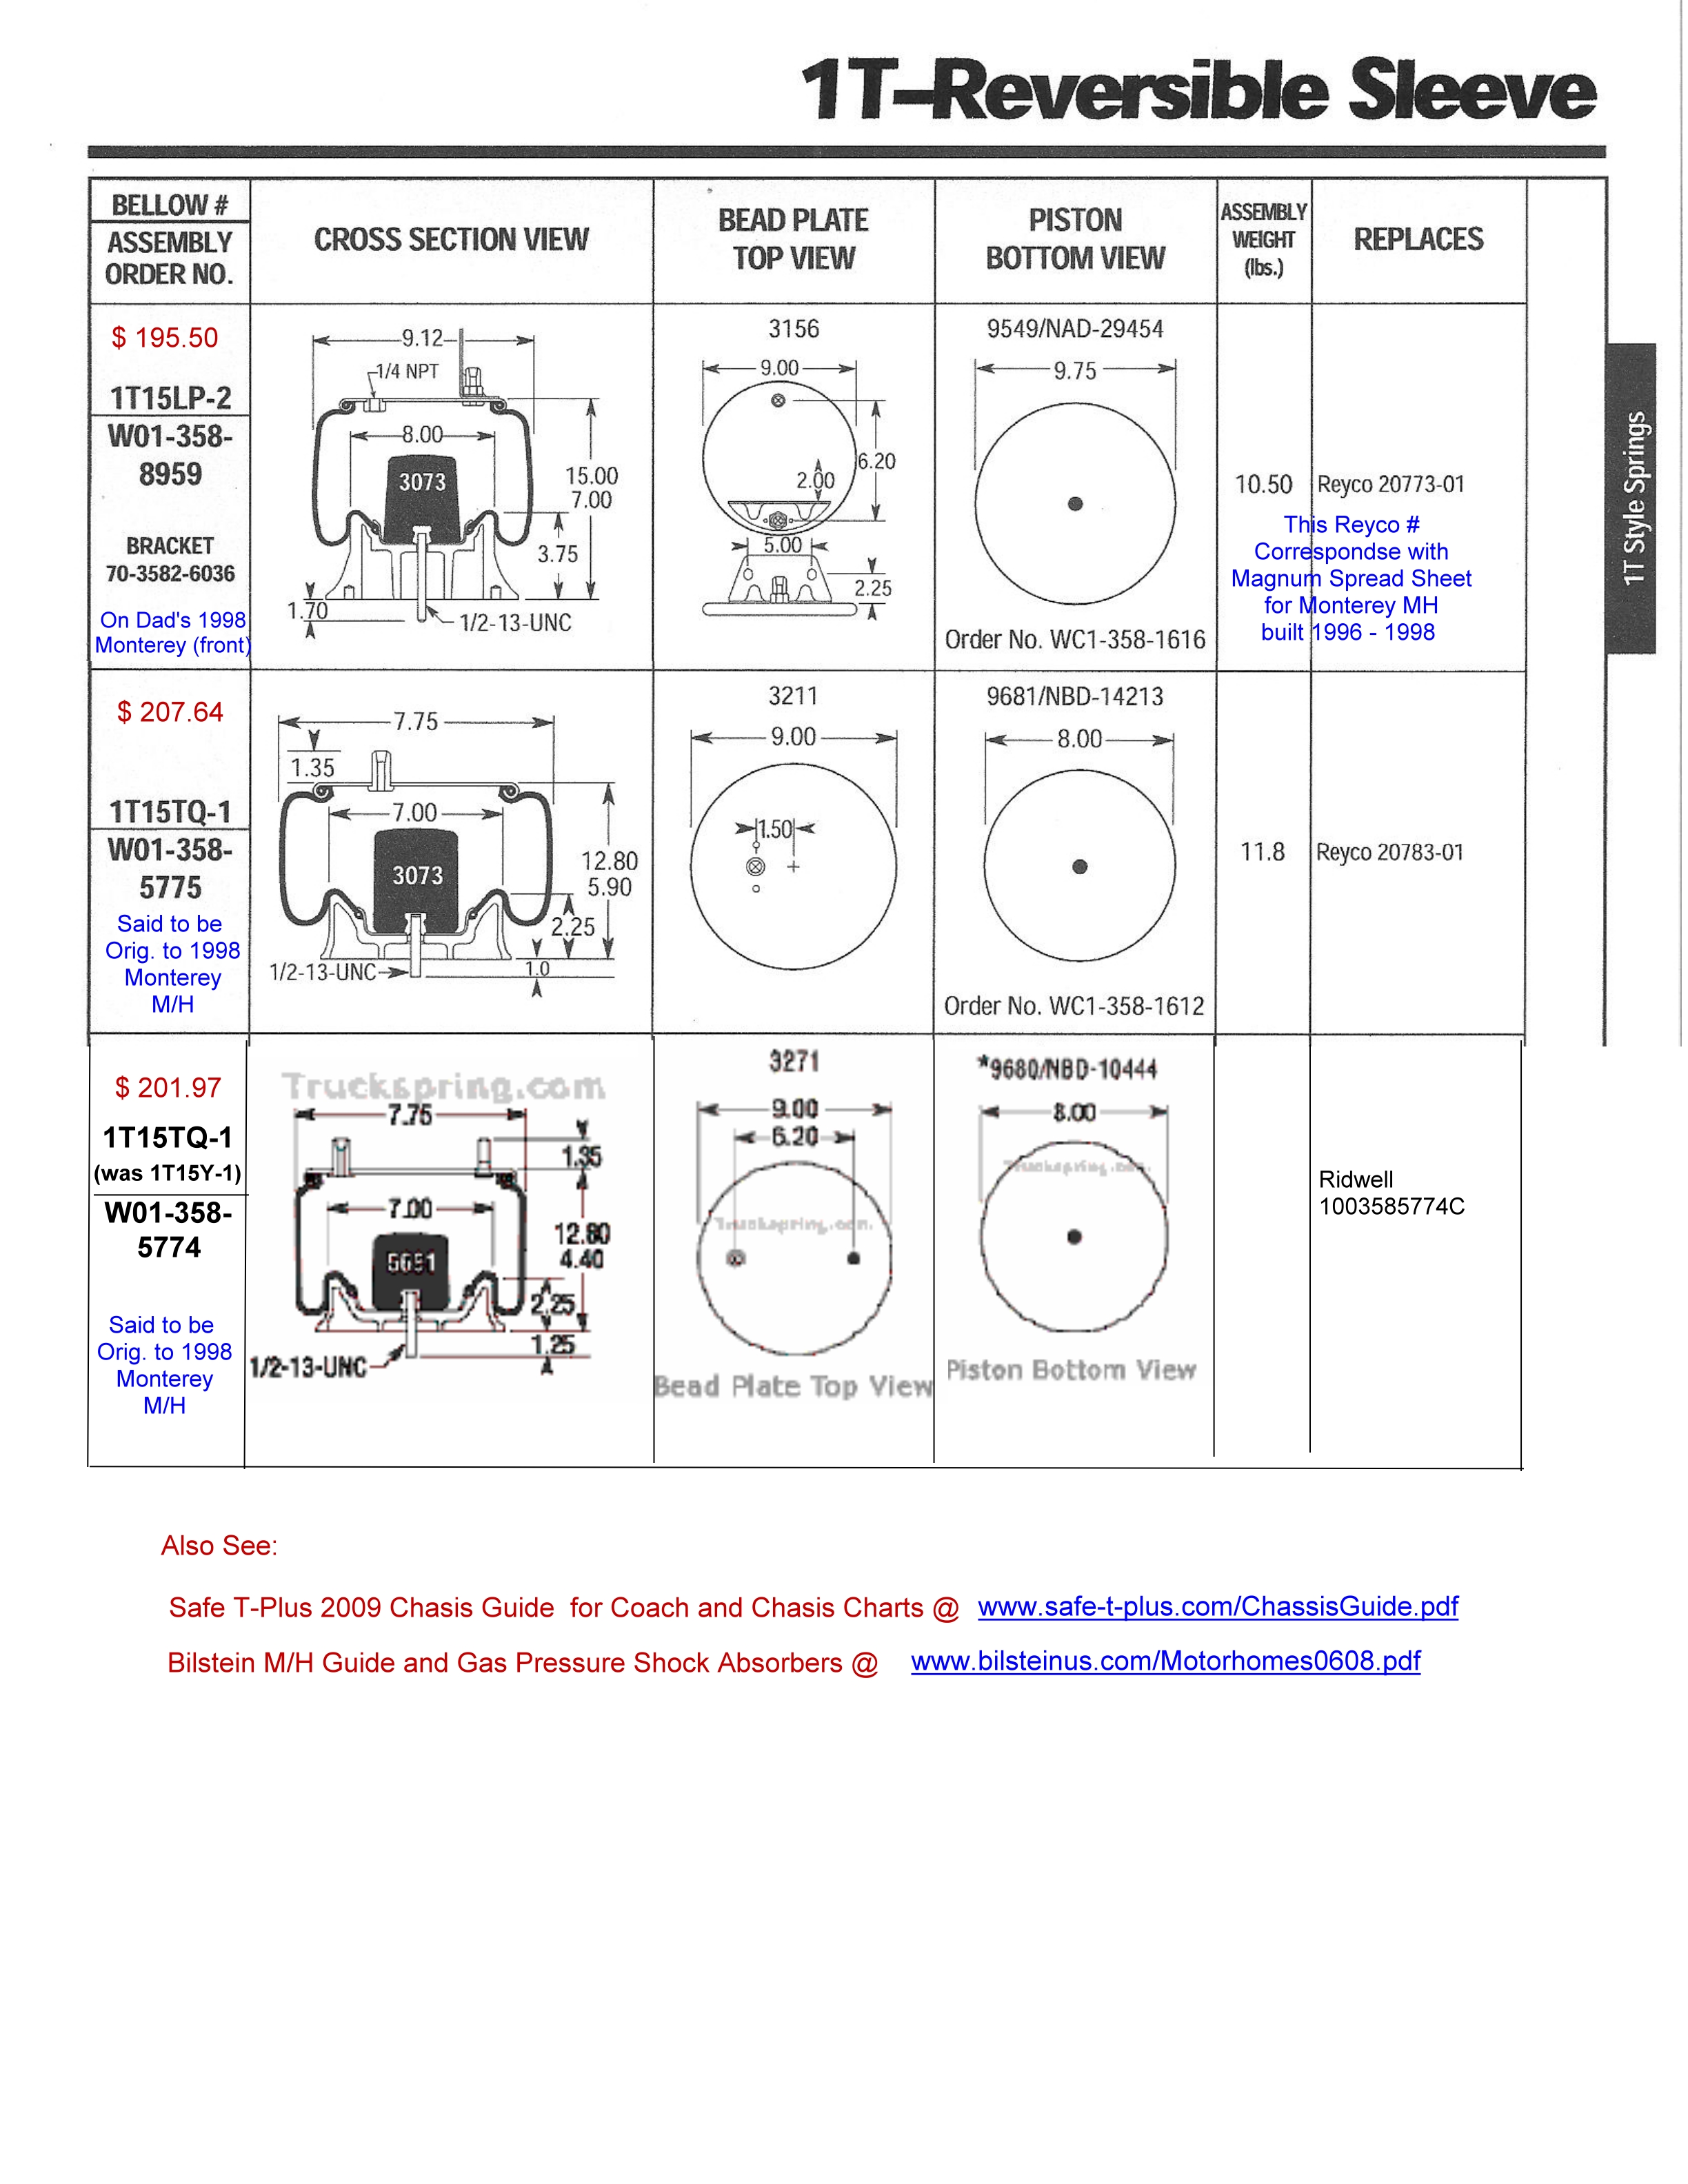 1998 Beaver Monterey Coach Air Spring ID Chart beaver info page Solenoid Wiring Diagram at crackthecode.co